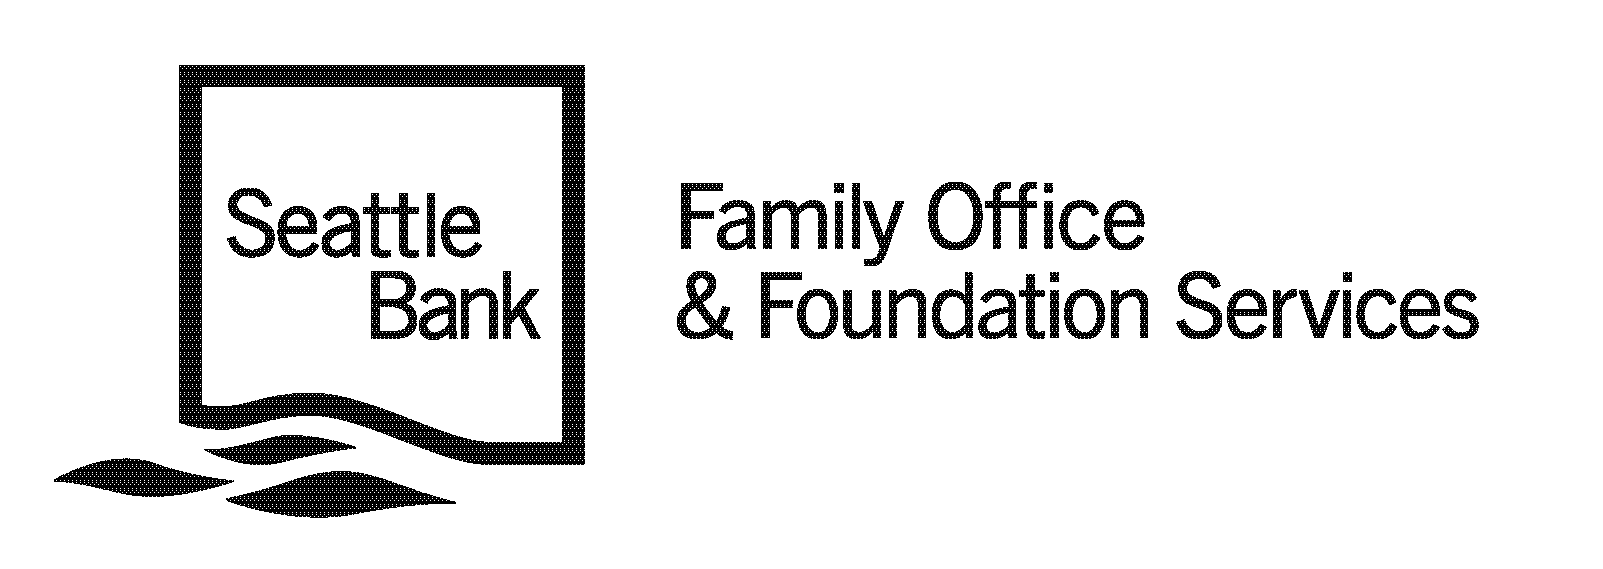 Seattle Bank Family Office & Foundation Services